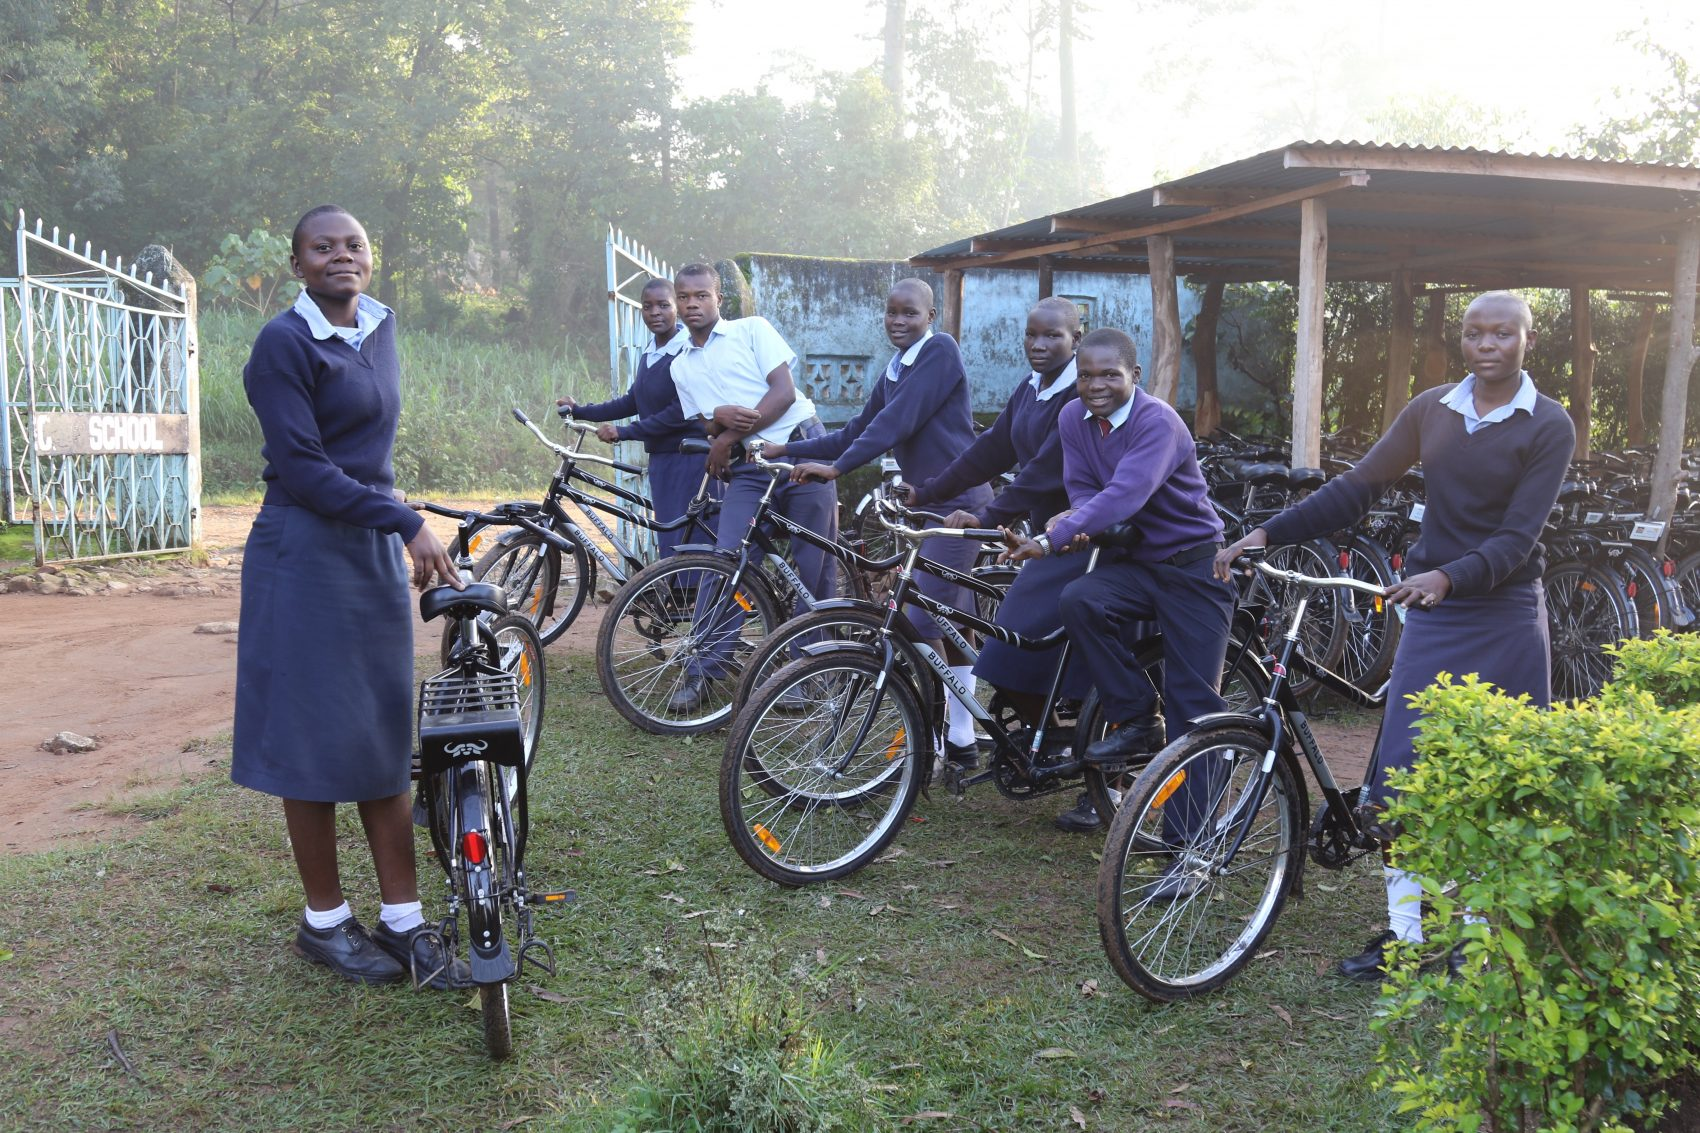 Angela (left) and other students at Bukhaywa Secondary School. (Courtesy World Bicycle Relief)